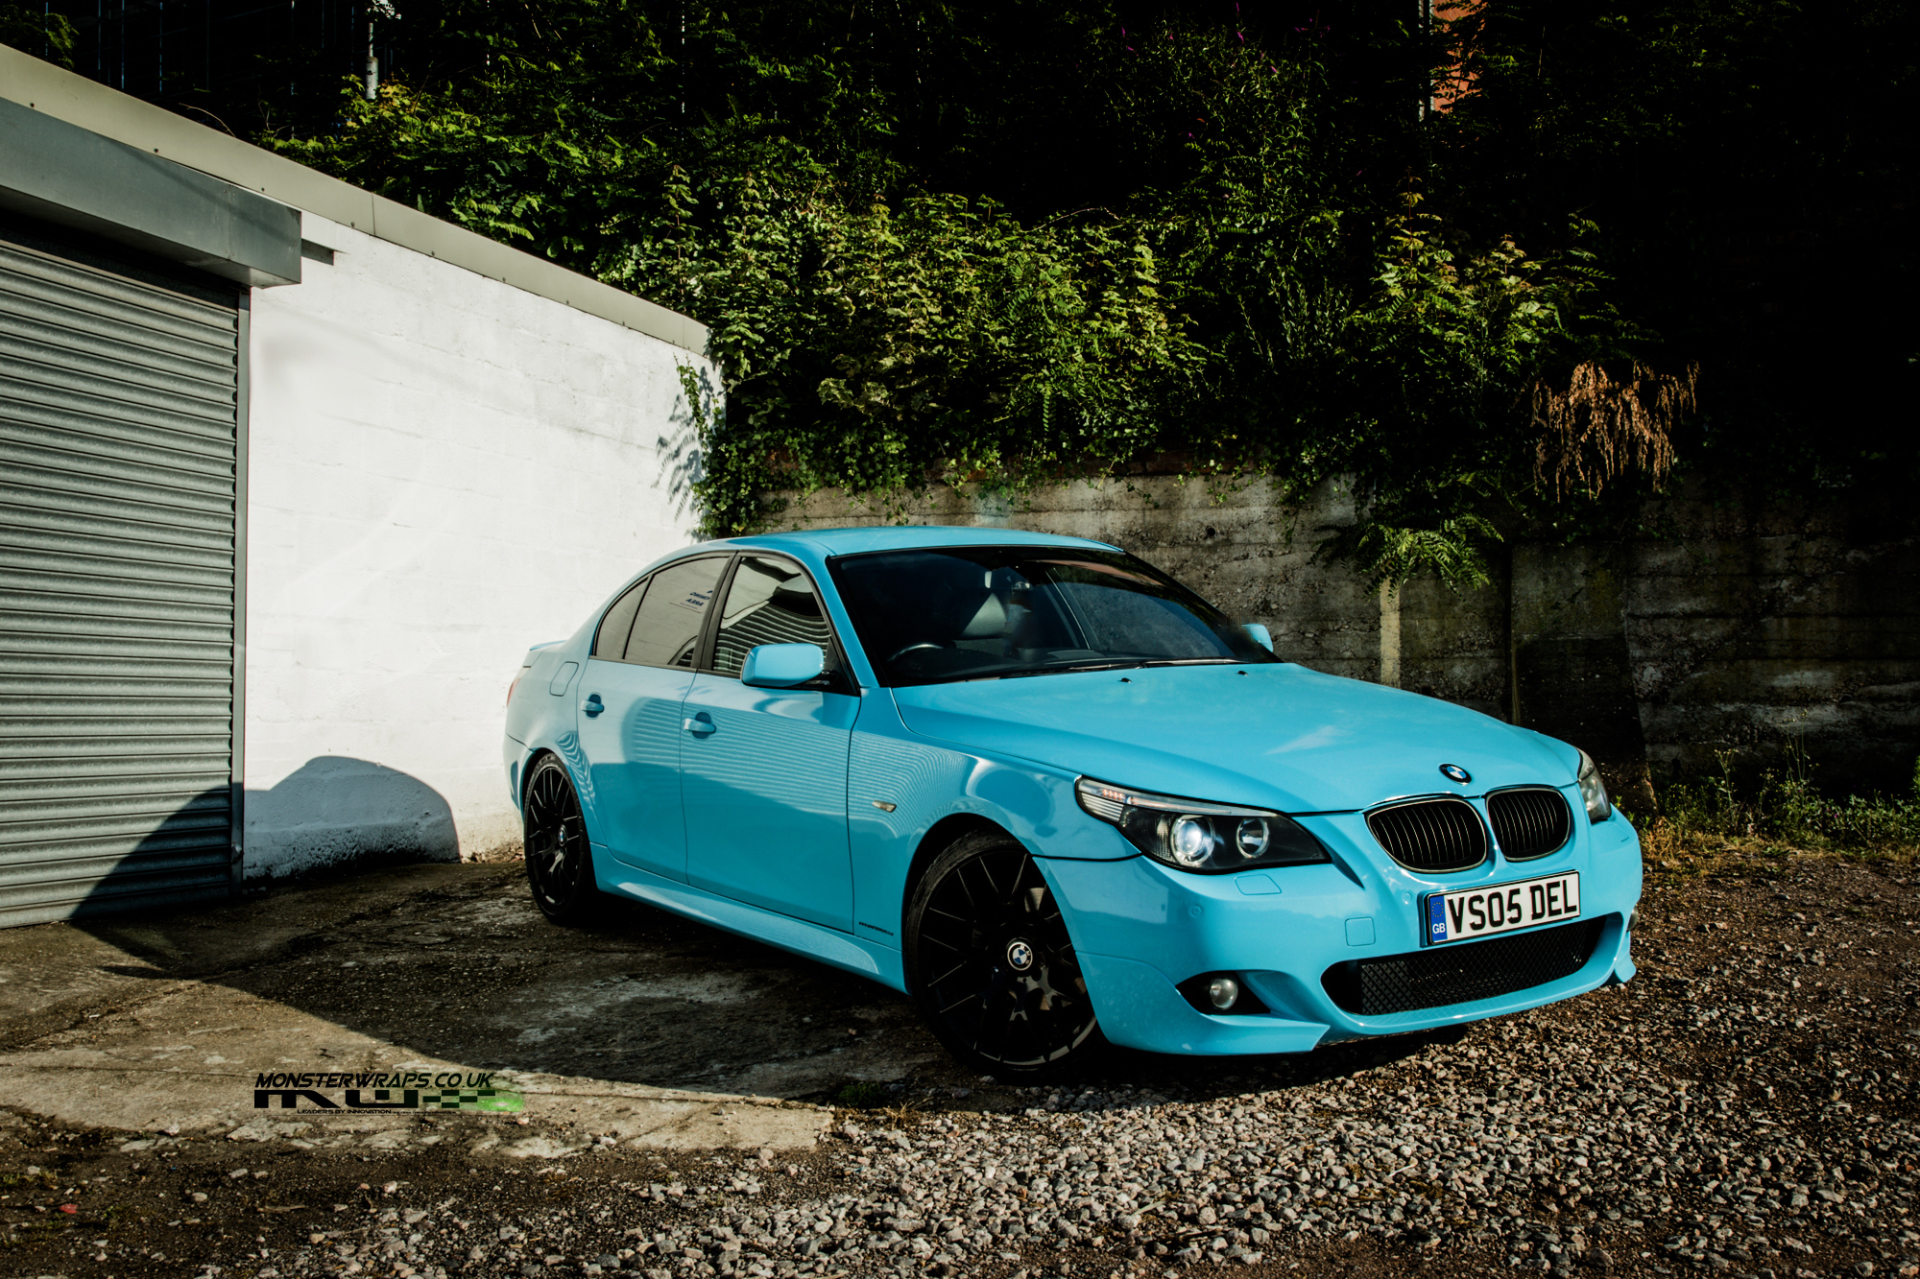 bmw e60 5 series gloss sky blue wrap monsterwraps southampton hampshire. Black Bedroom Furniture Sets. Home Design Ideas